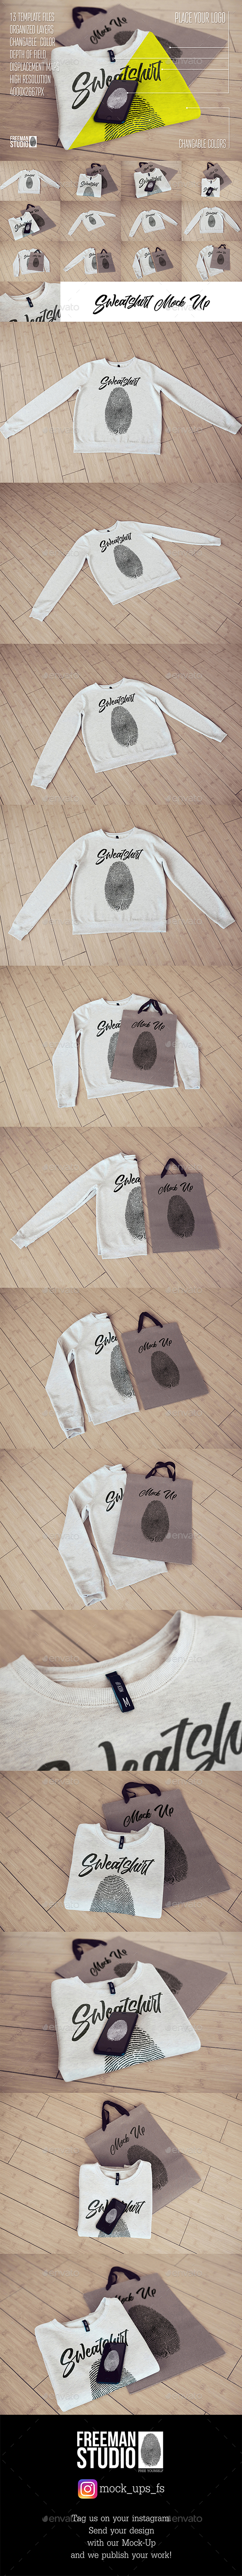 Sweatshirt Mock-Up - Product Mock-Ups Graphics